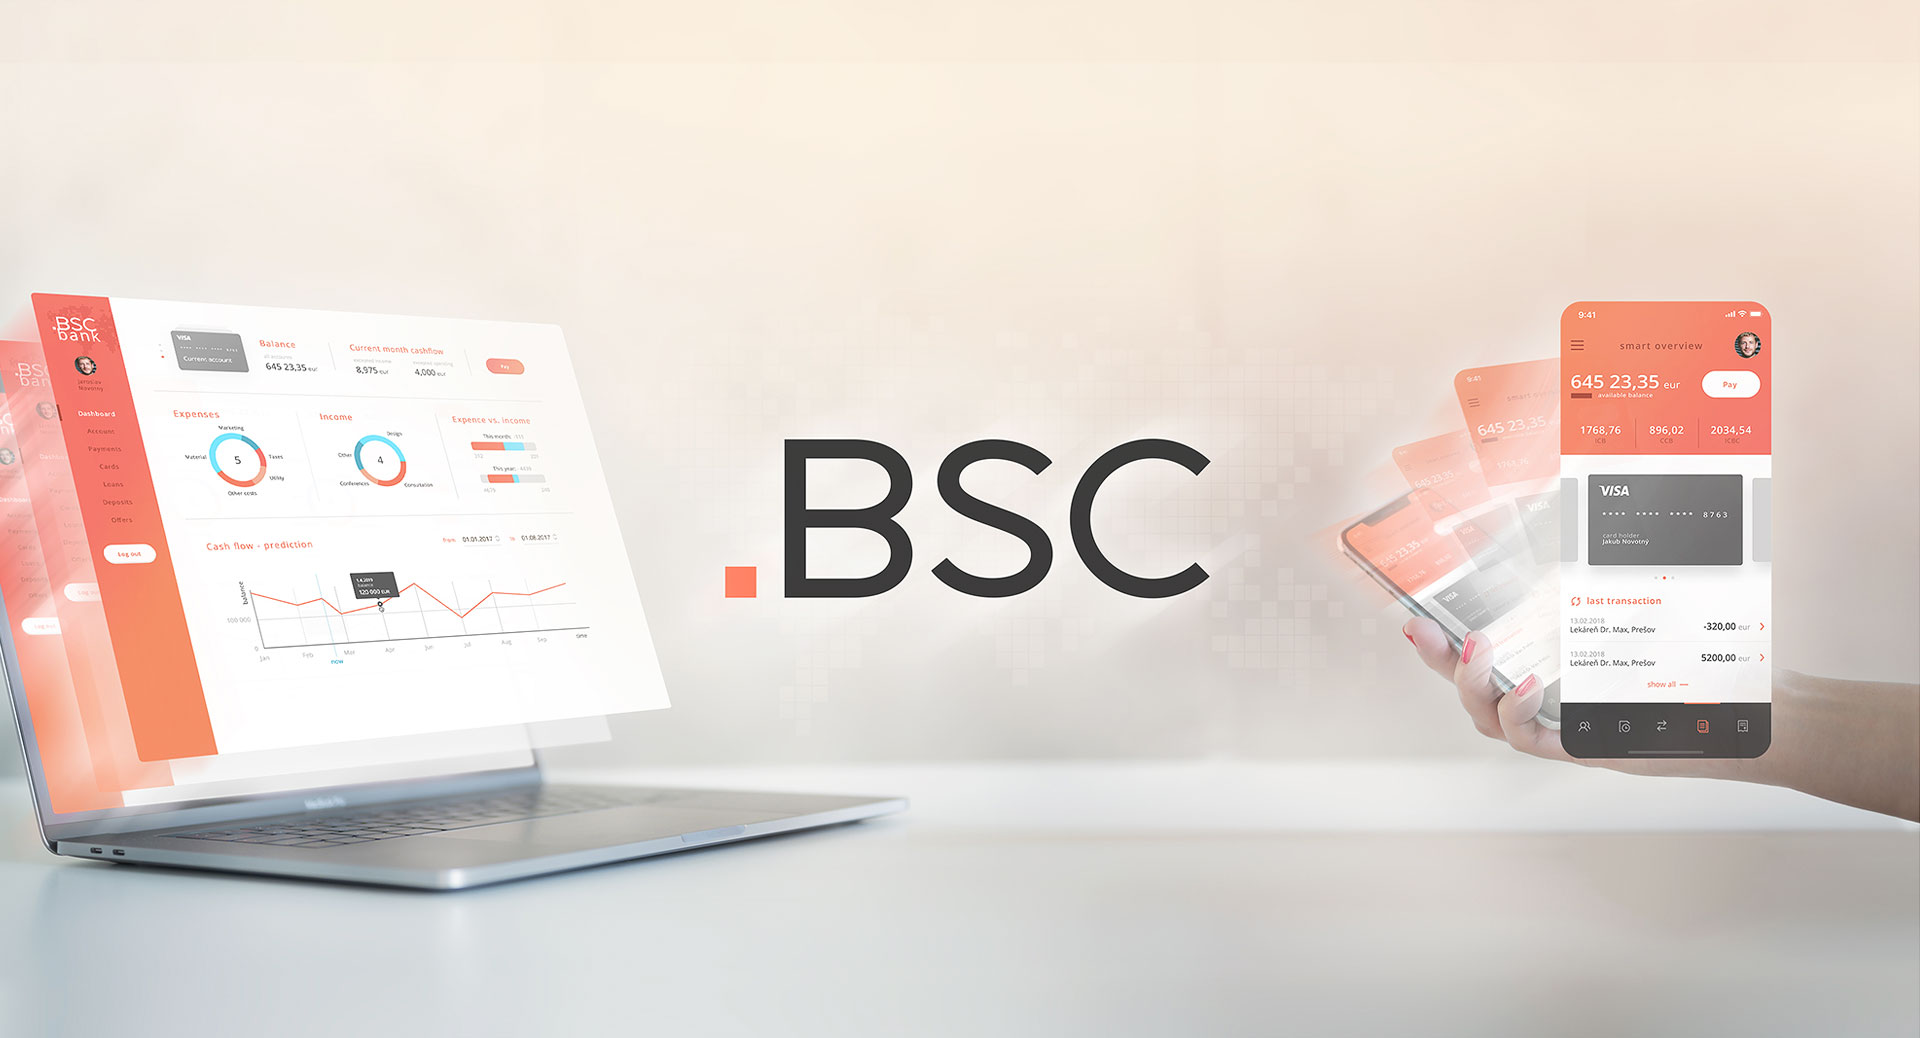 BSC - Banking Sotware Company